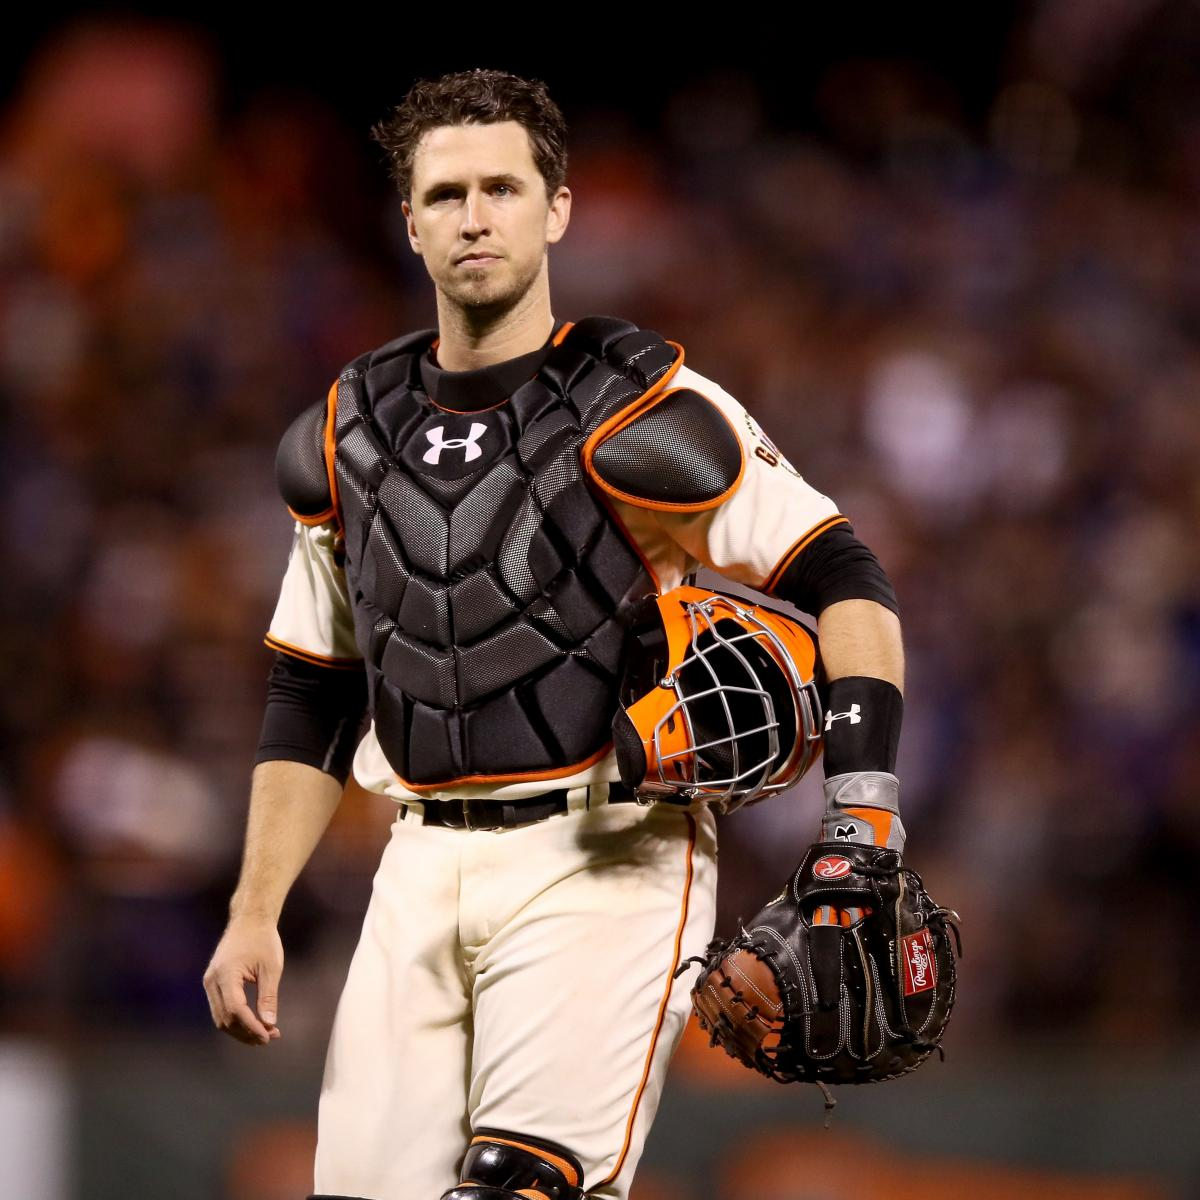 Buster Posey Biography - Facts, Childhood, Family, Records of Baseball Player